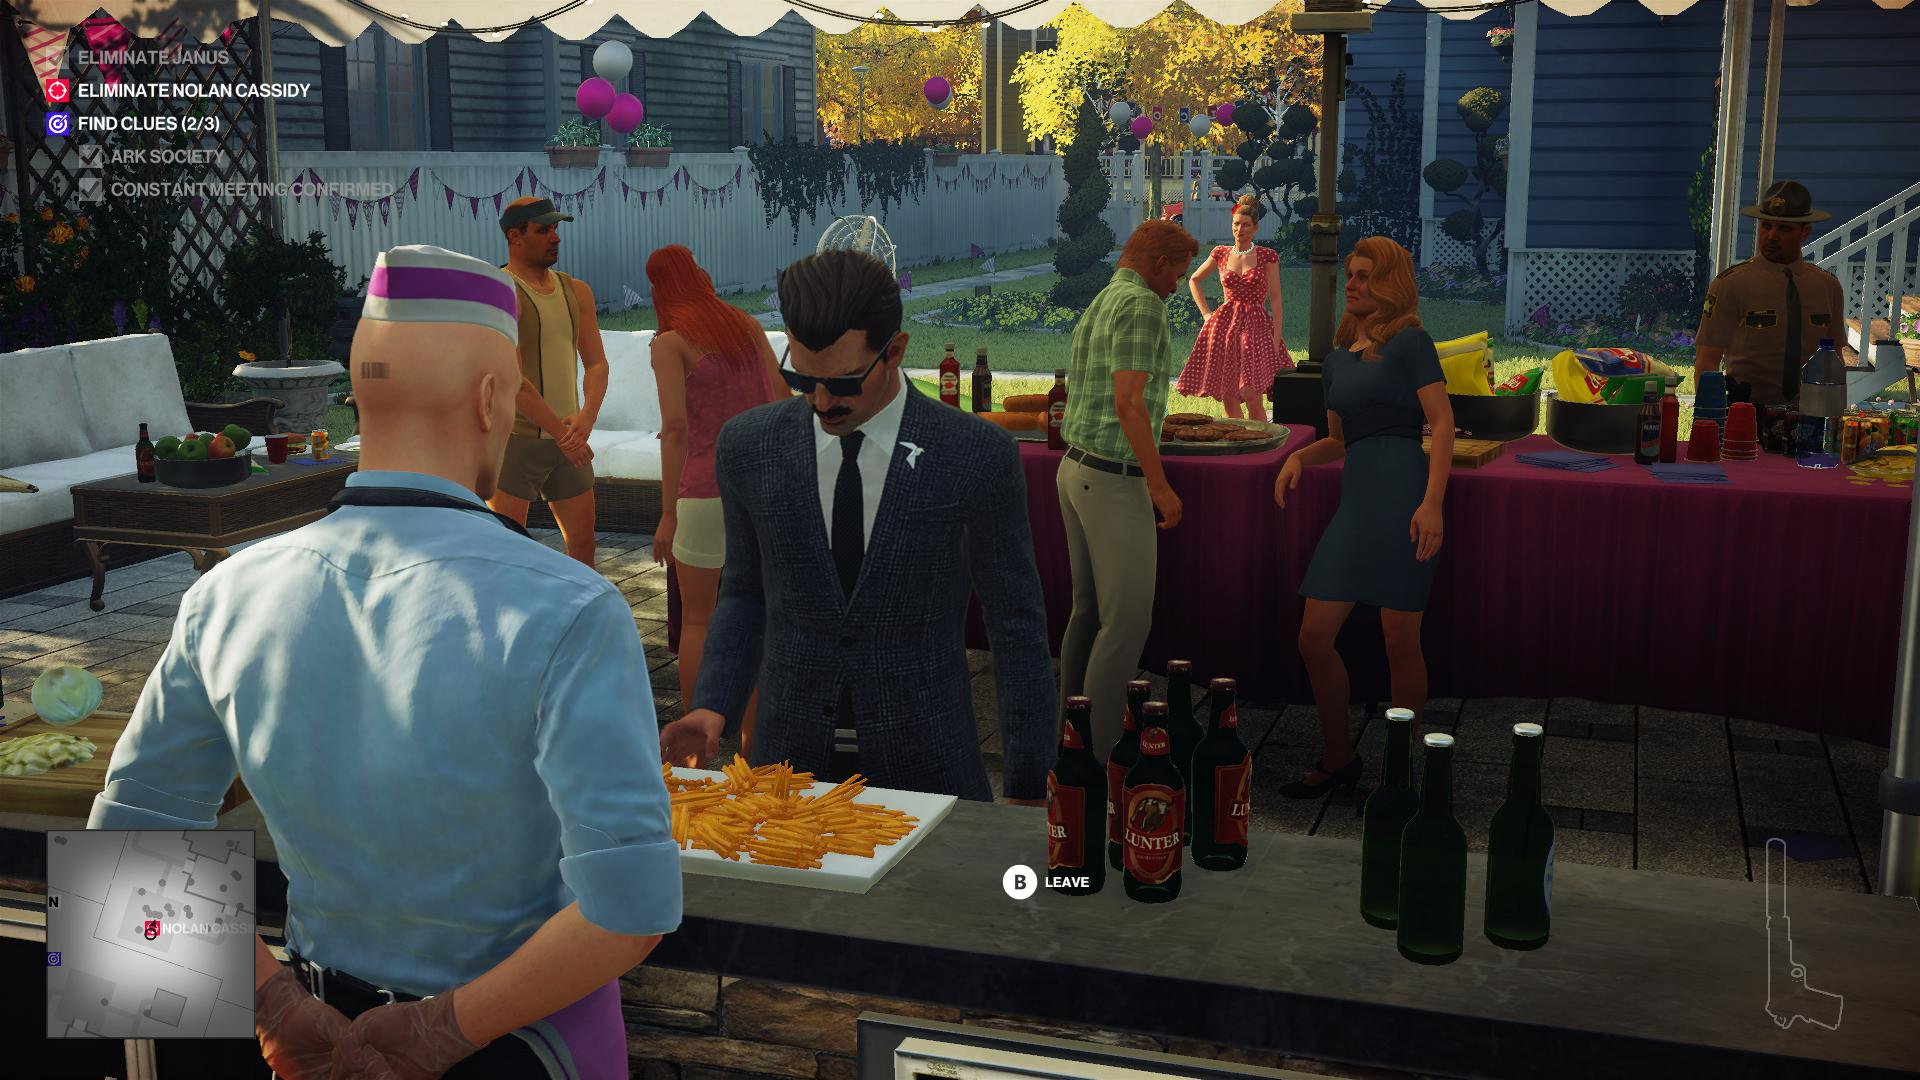 Agent 47 disguised as a caterer serving fries and beer to a man in a suit and shades.